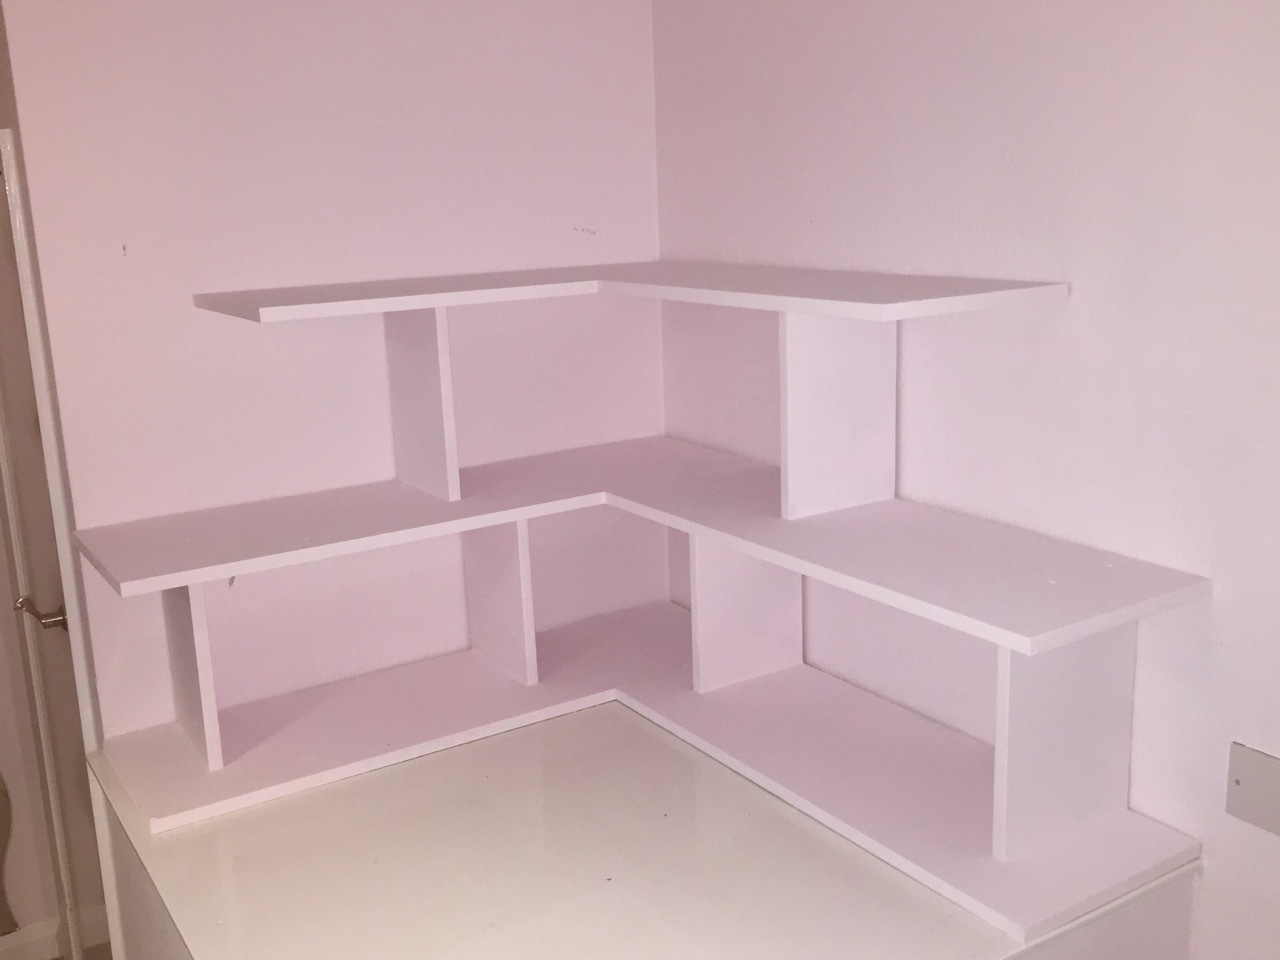 bespoke shelving unit